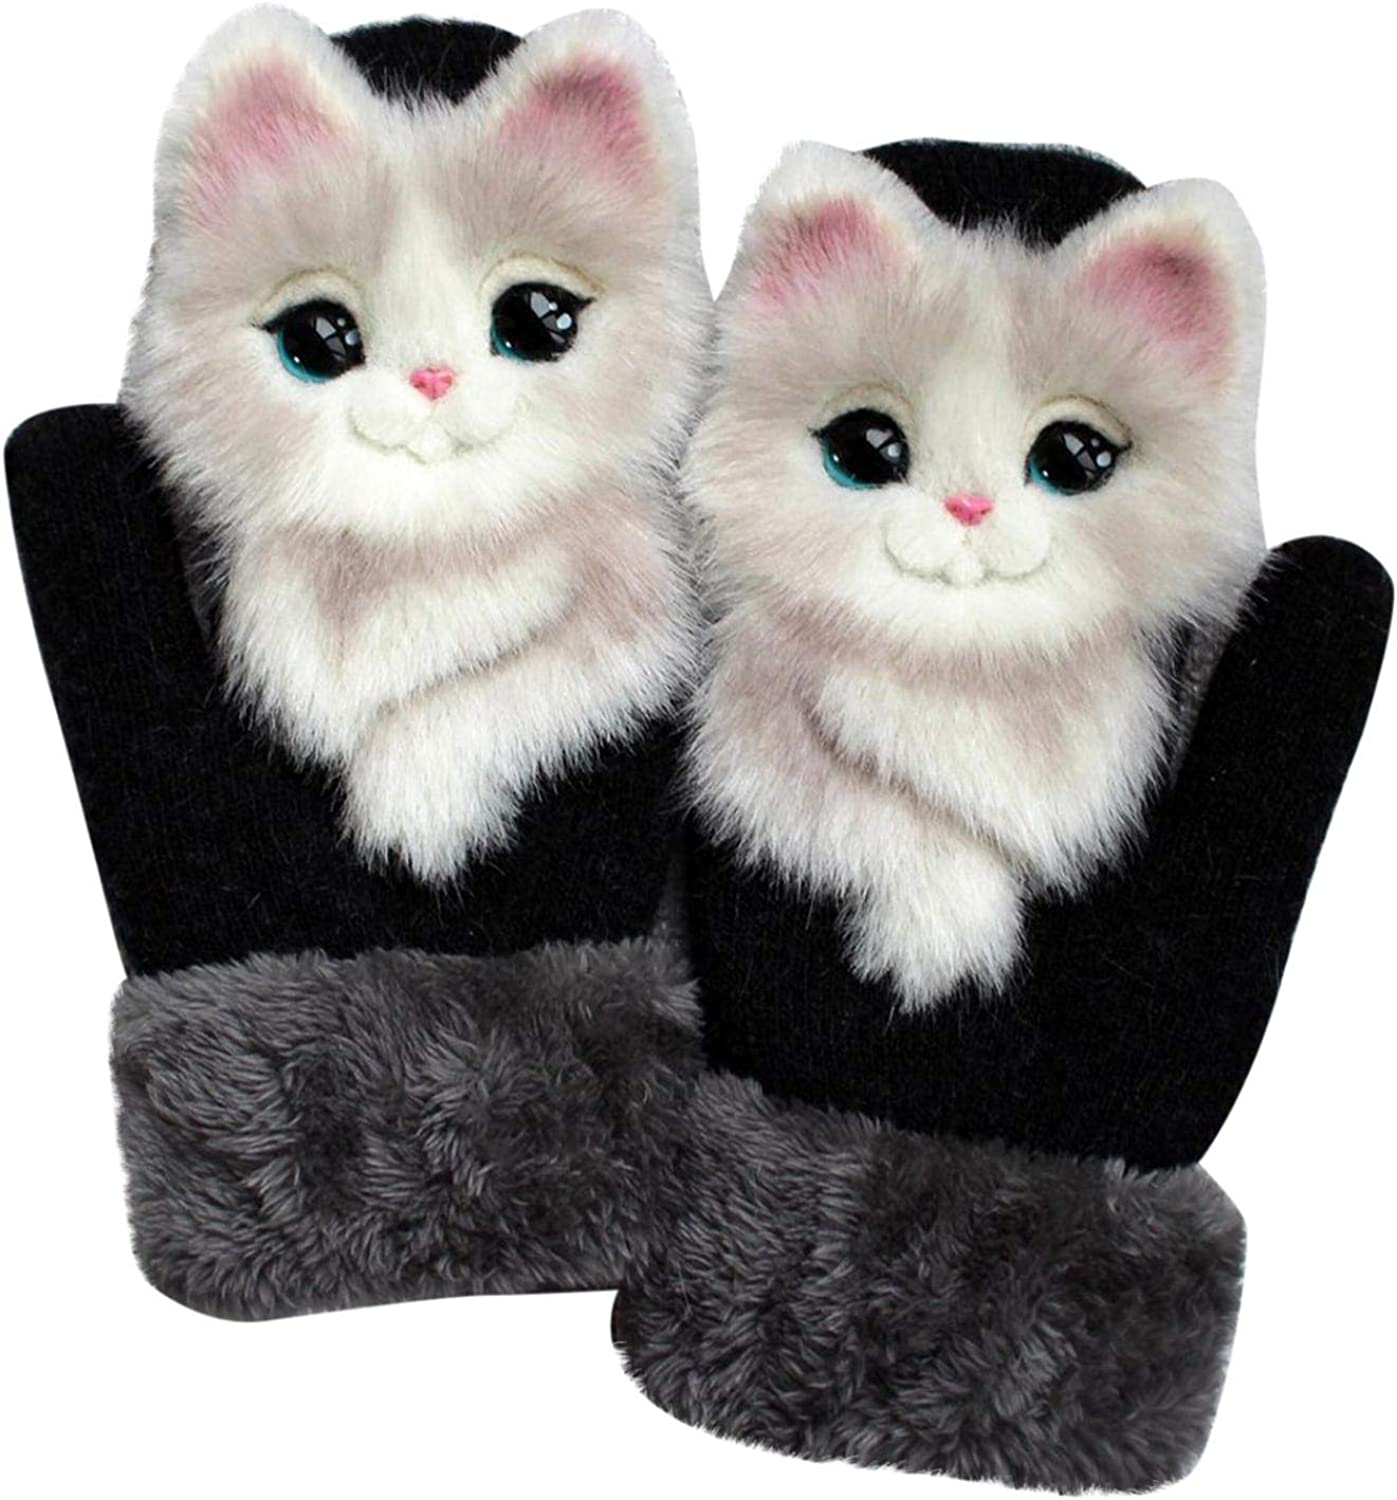 Ongmies Cartoon Animal Gloves Autumn and Winter Warm Mittens Gloves Plush Knitted Gloves for Men&Women Warm Winter Gift